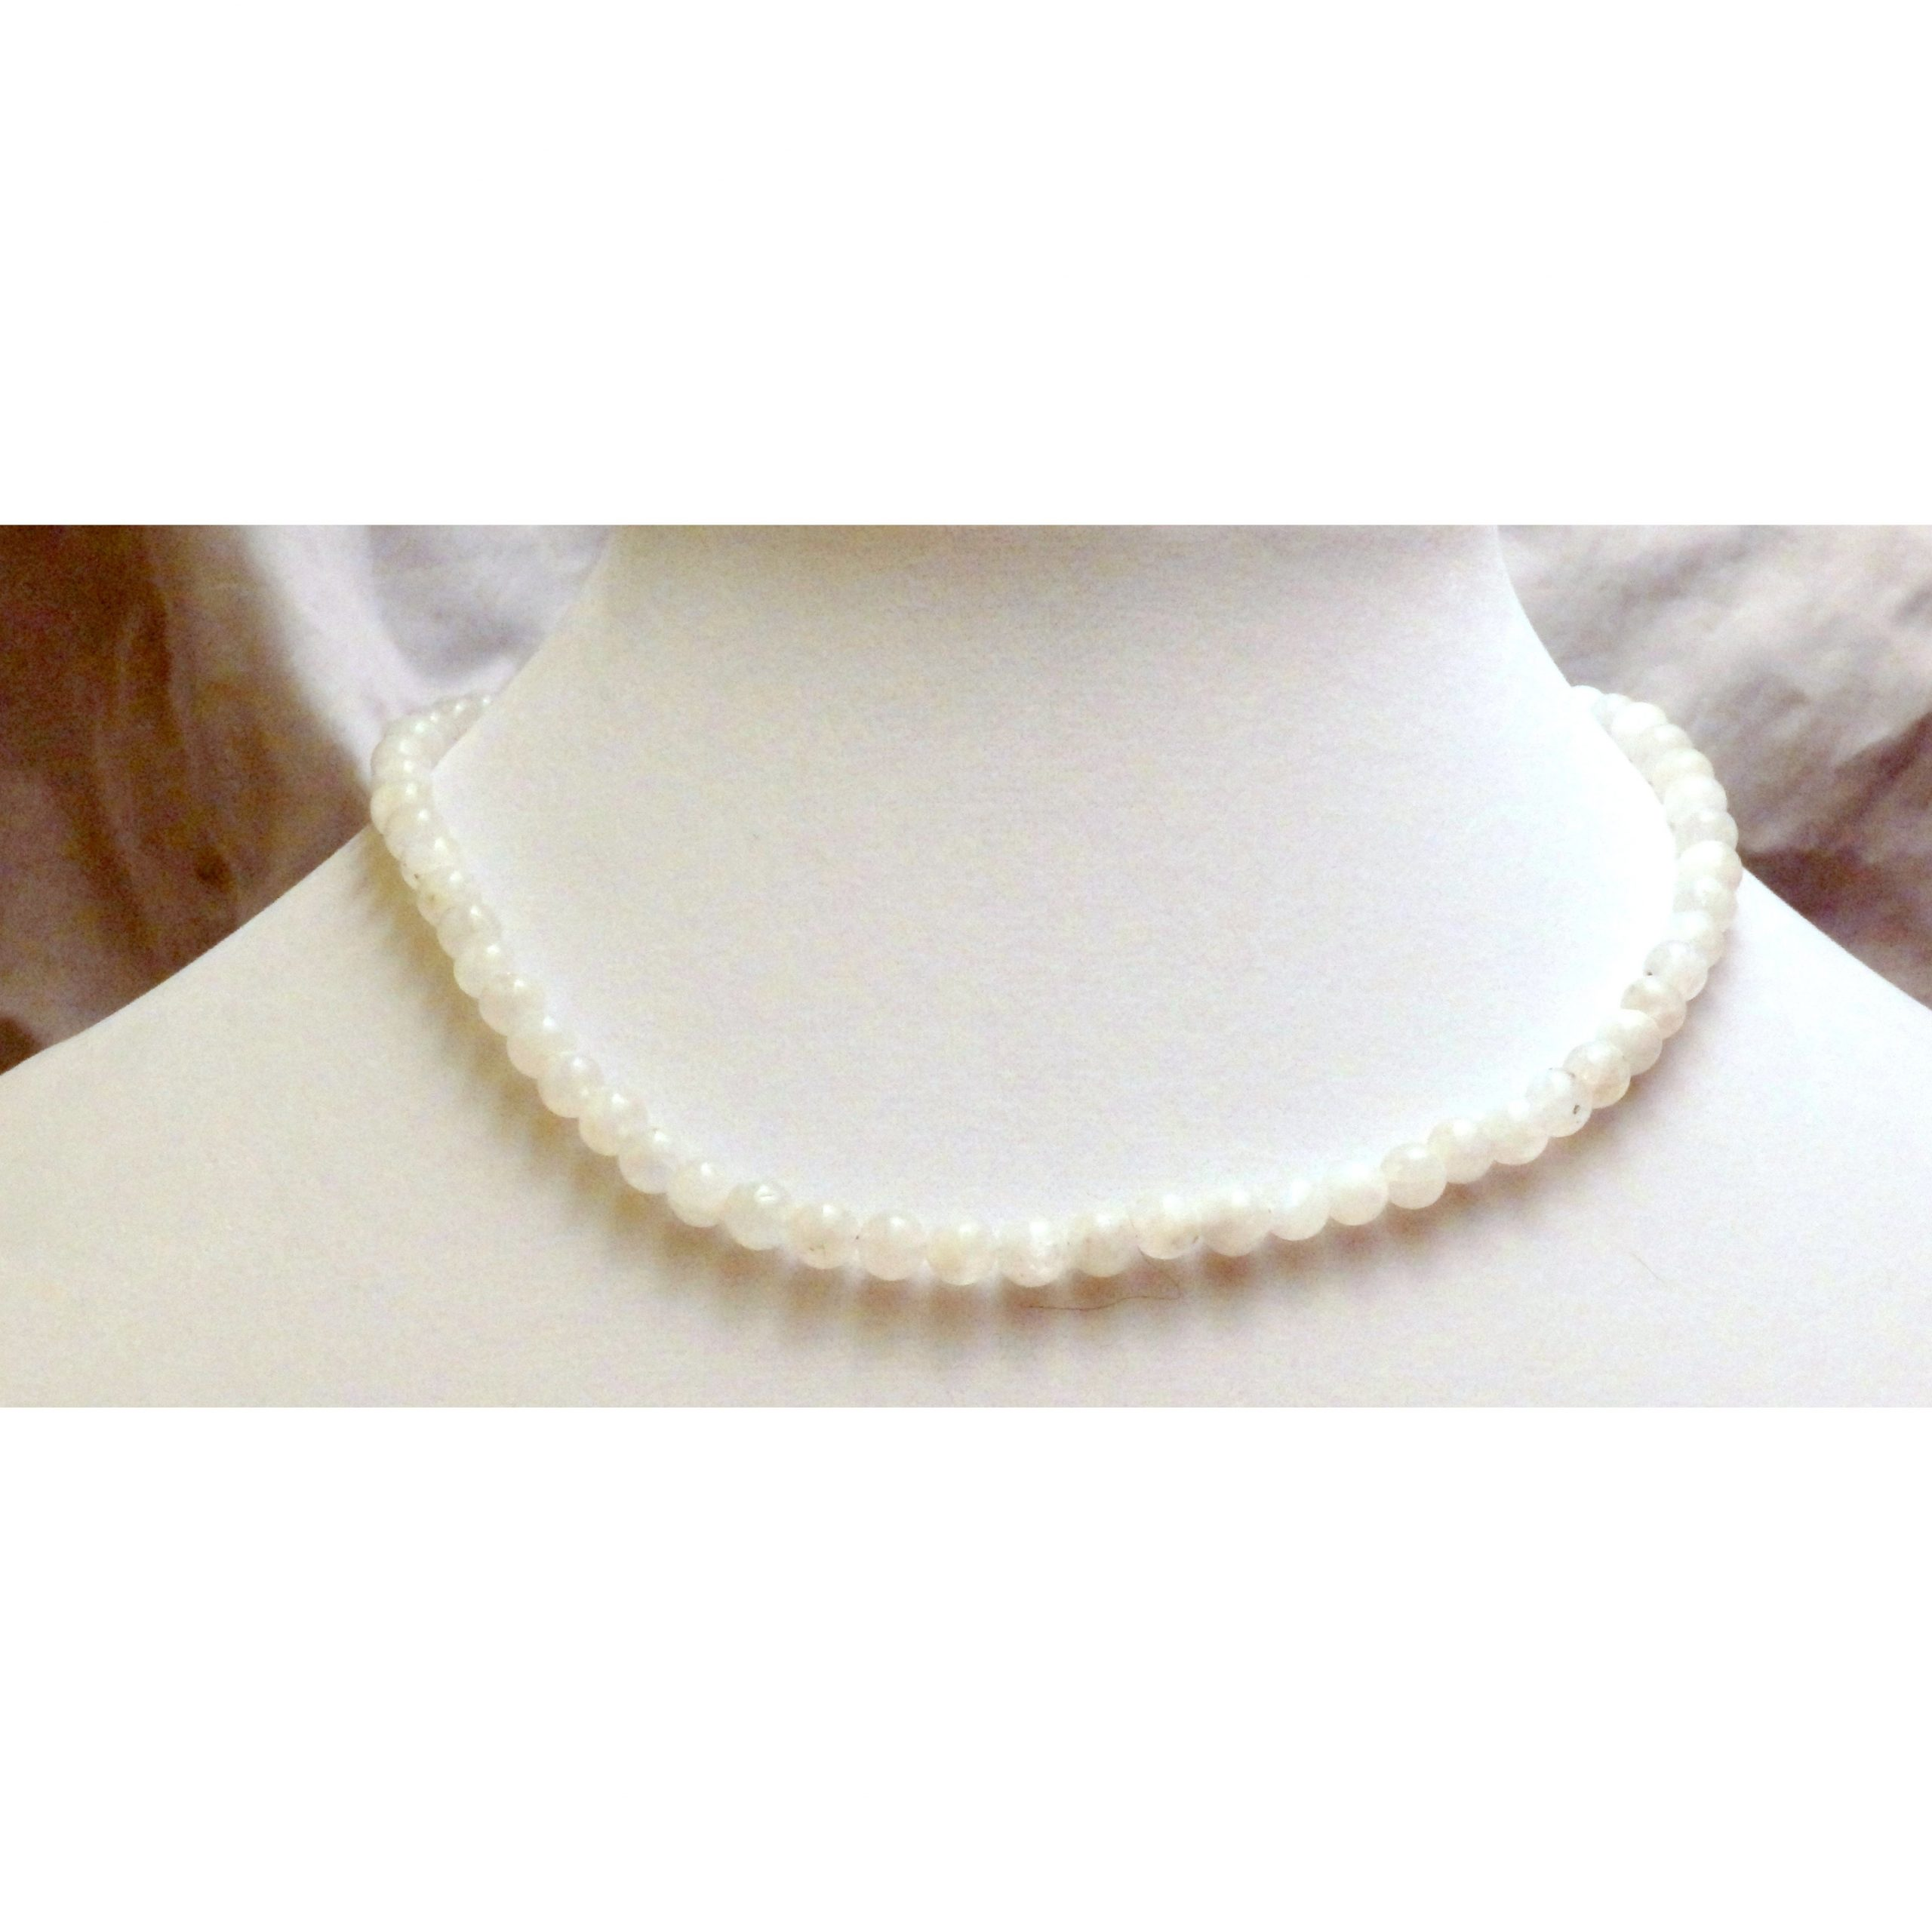 Moonstone necklace 1151